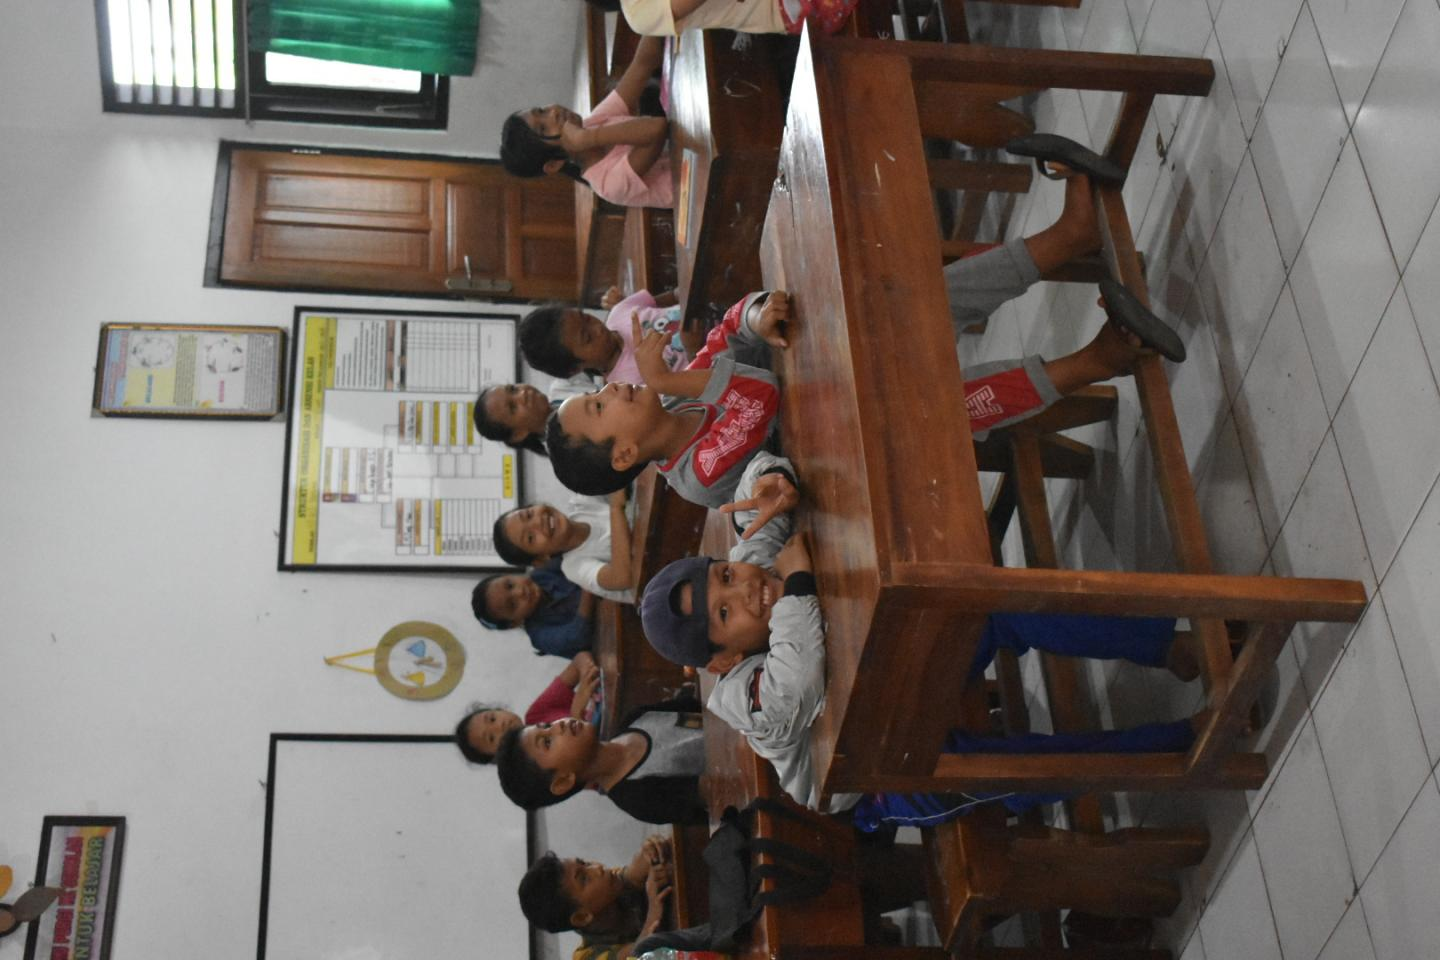 Children in the classroom in Bali, Indonesia